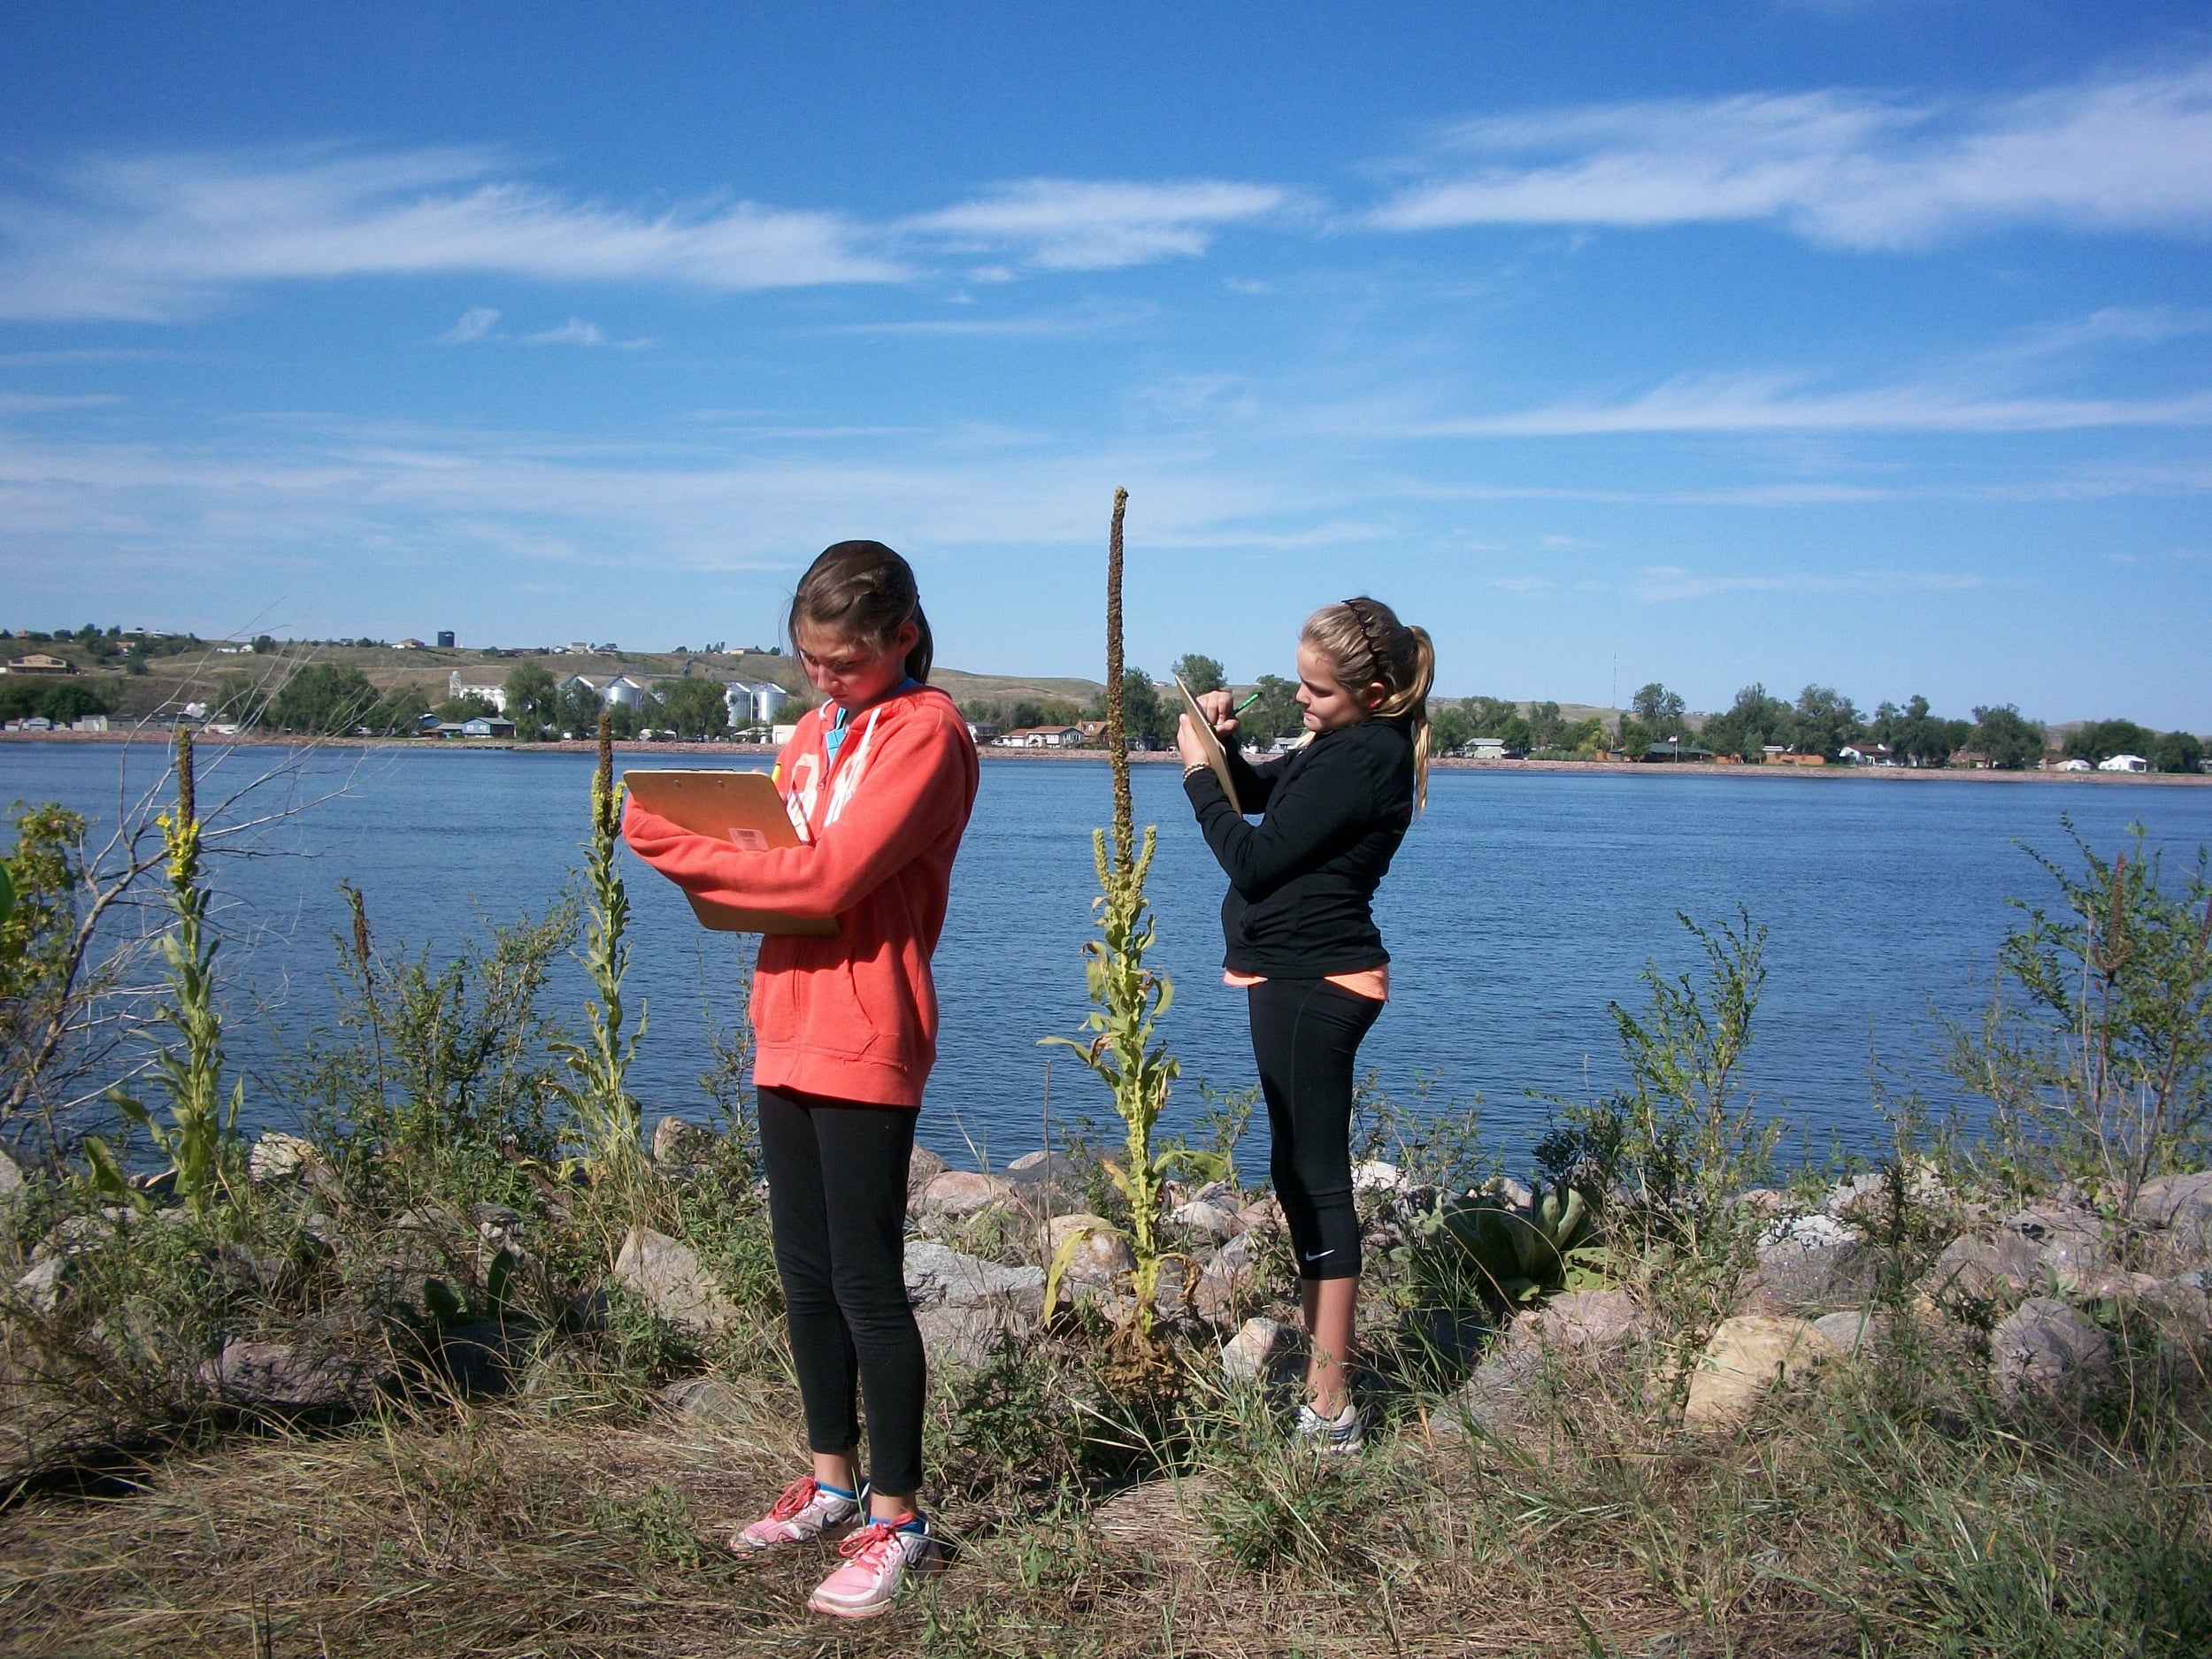 Fifth grade students make observations about organisms found along the river.